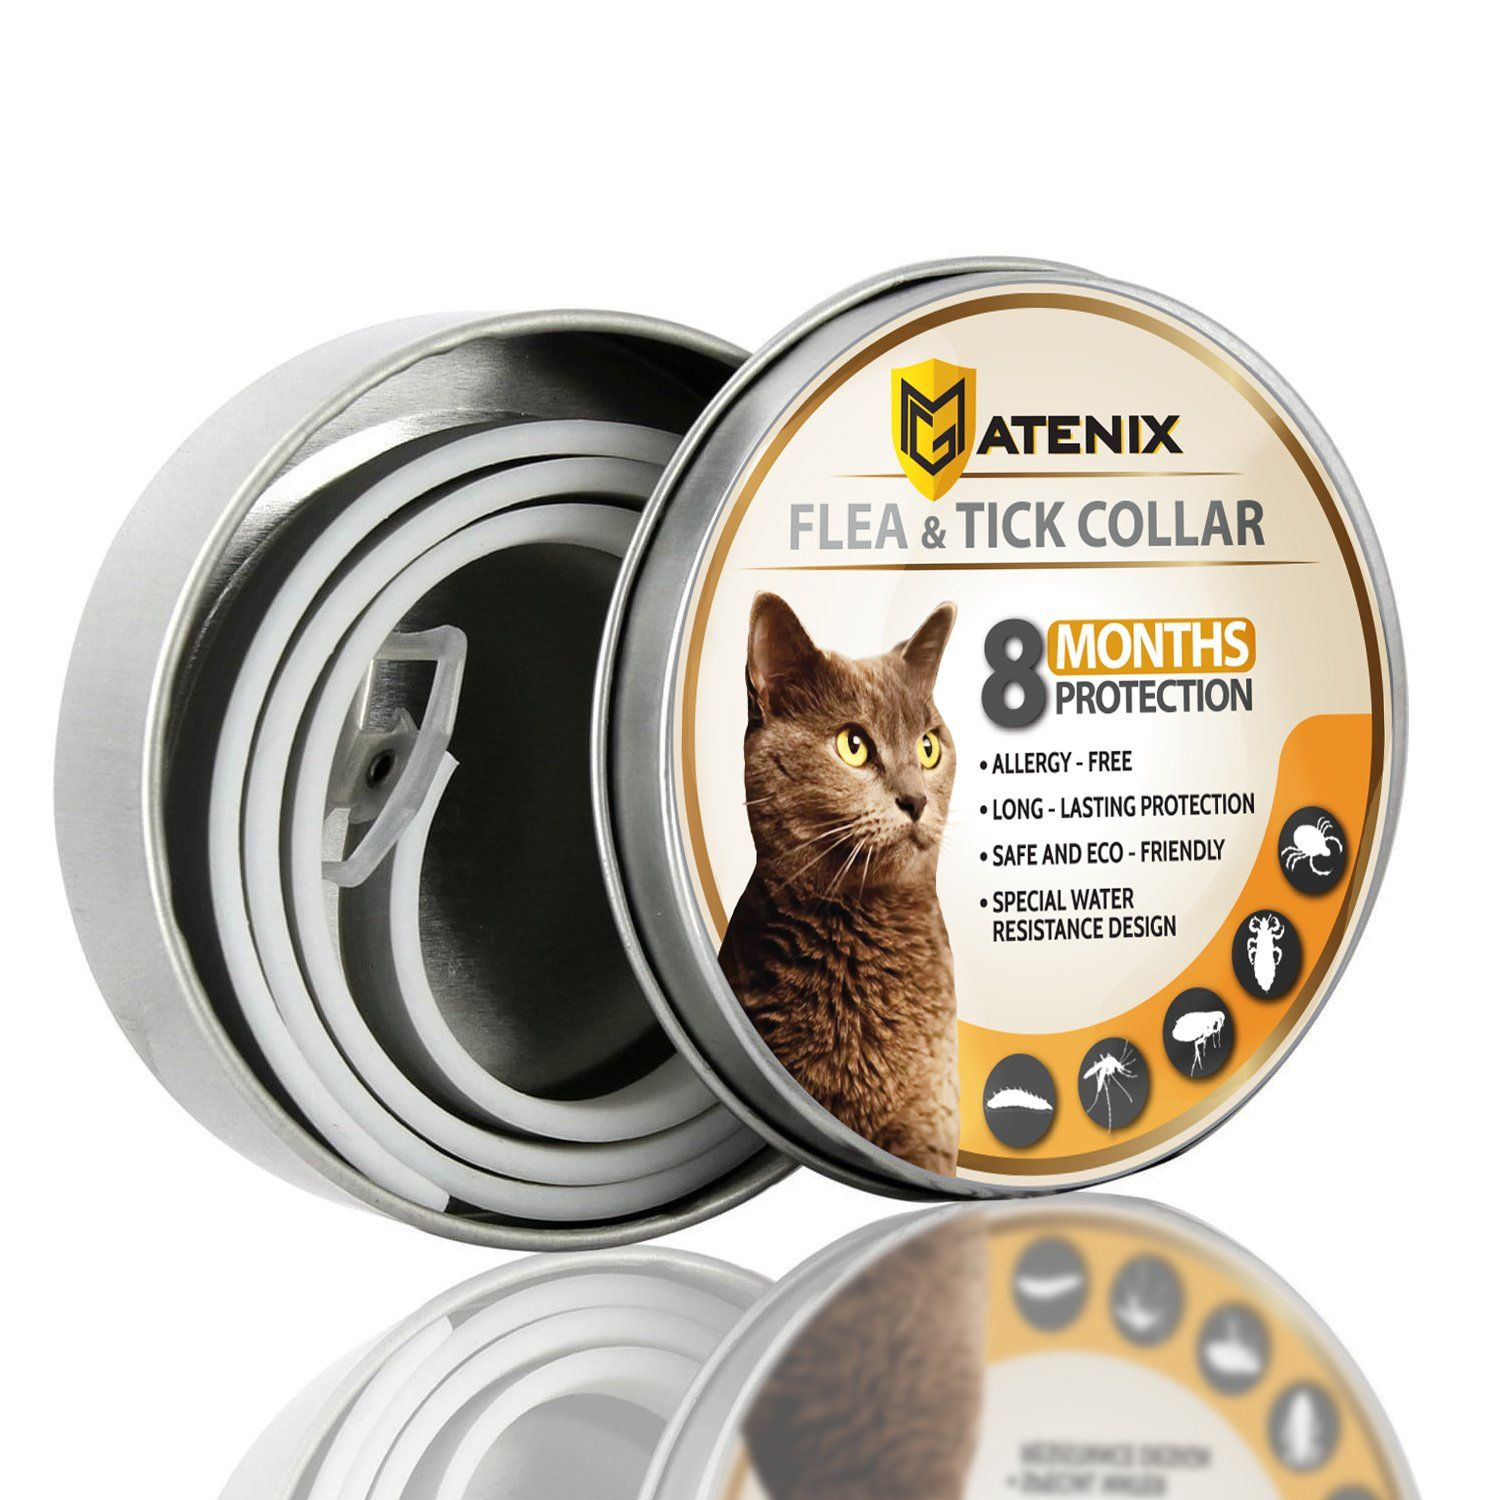 Matenix Flea And Tick Prevention Collar For Cat Best Flea Collar Repellent 8 Month Protection Environment Friendly With Fully Na Tick Prevention Fleas Ticks